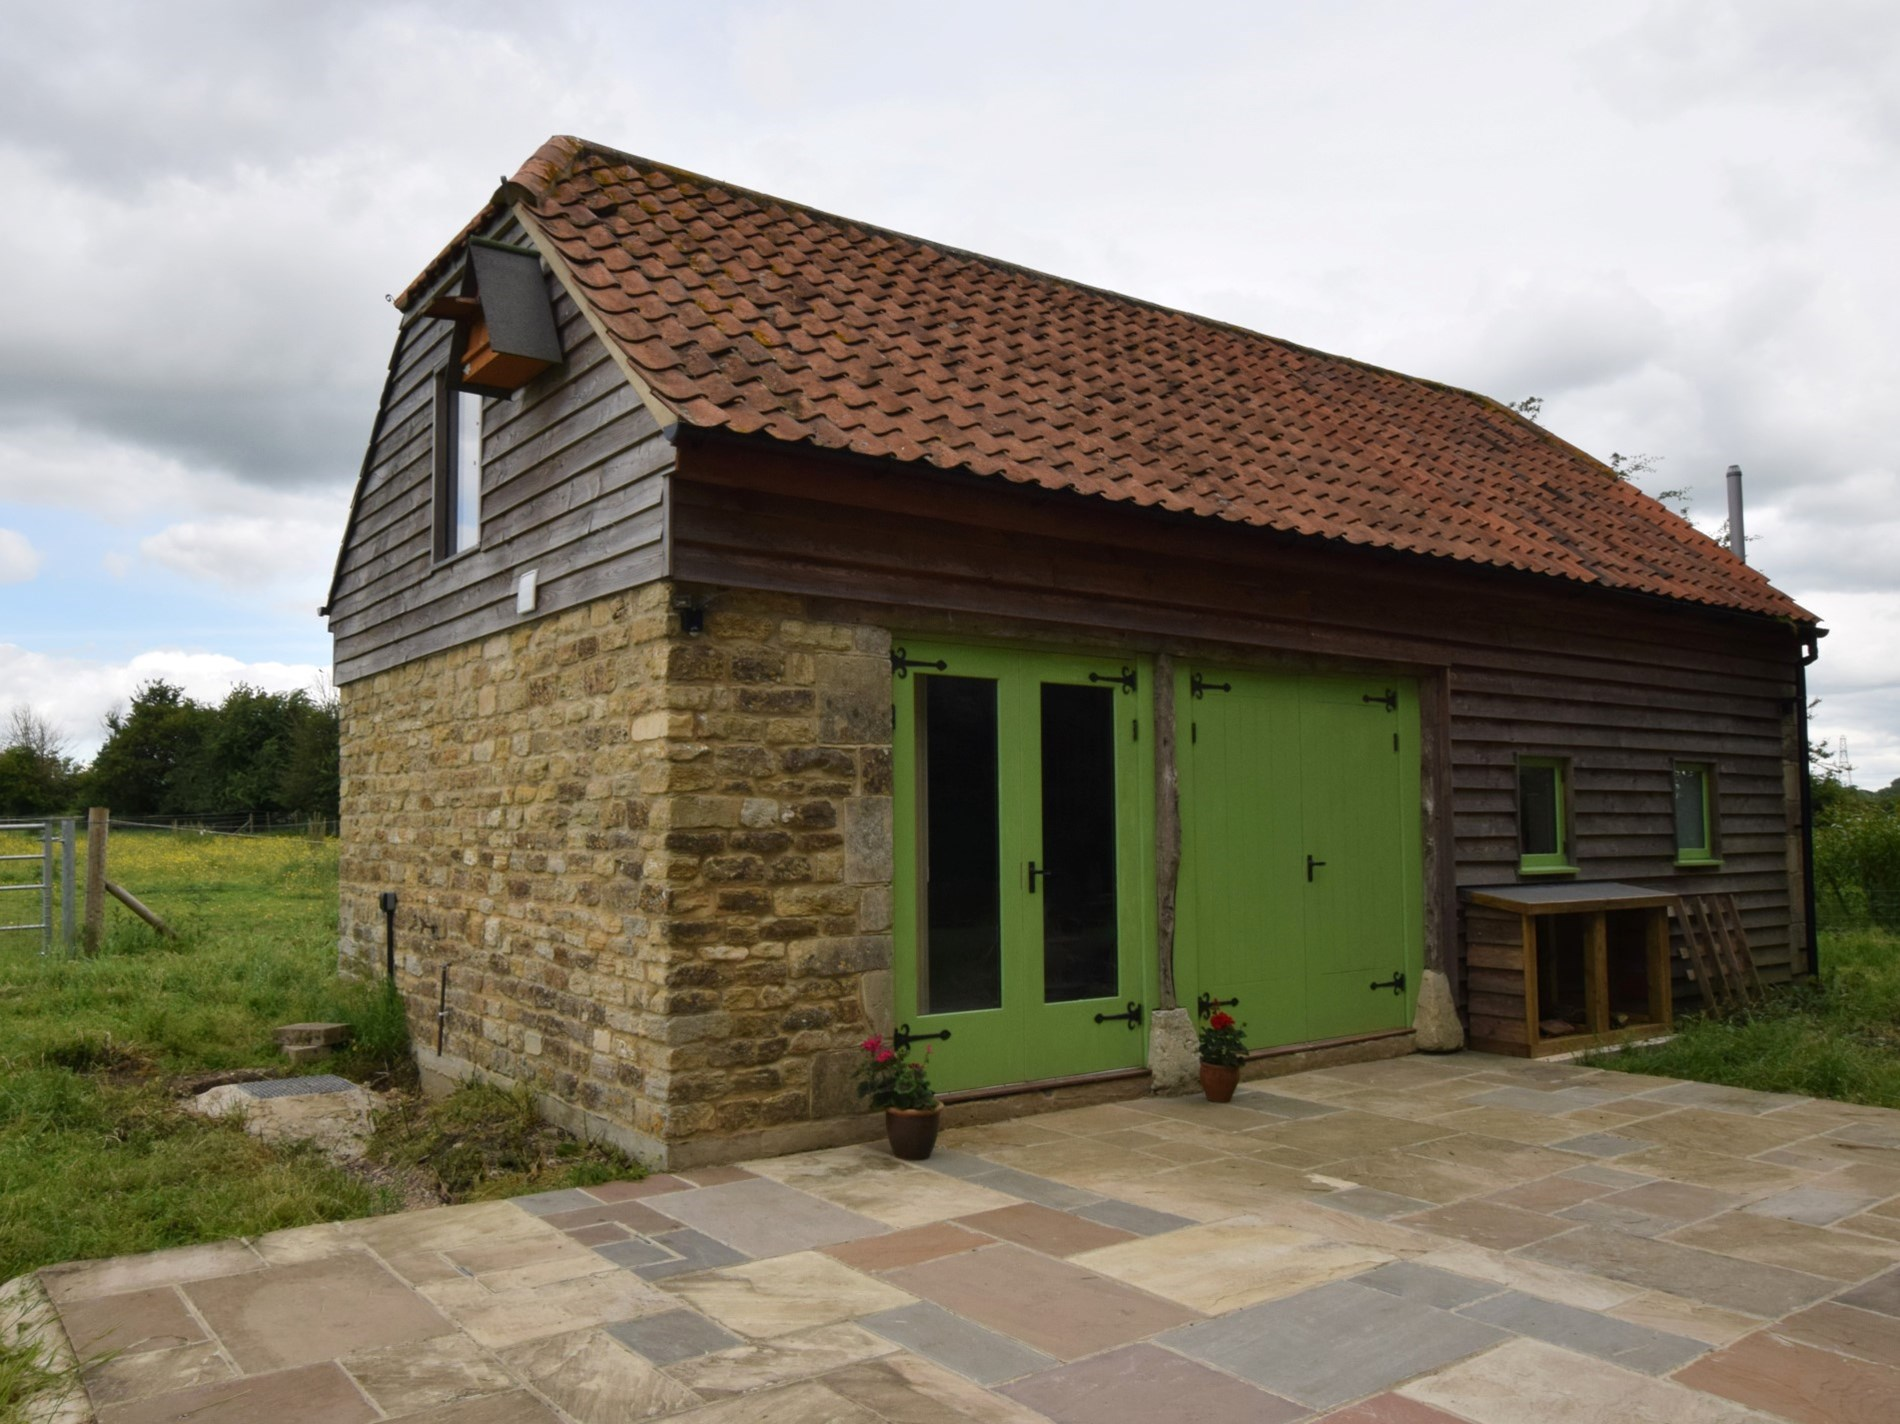 View towards the front of the detached former barn